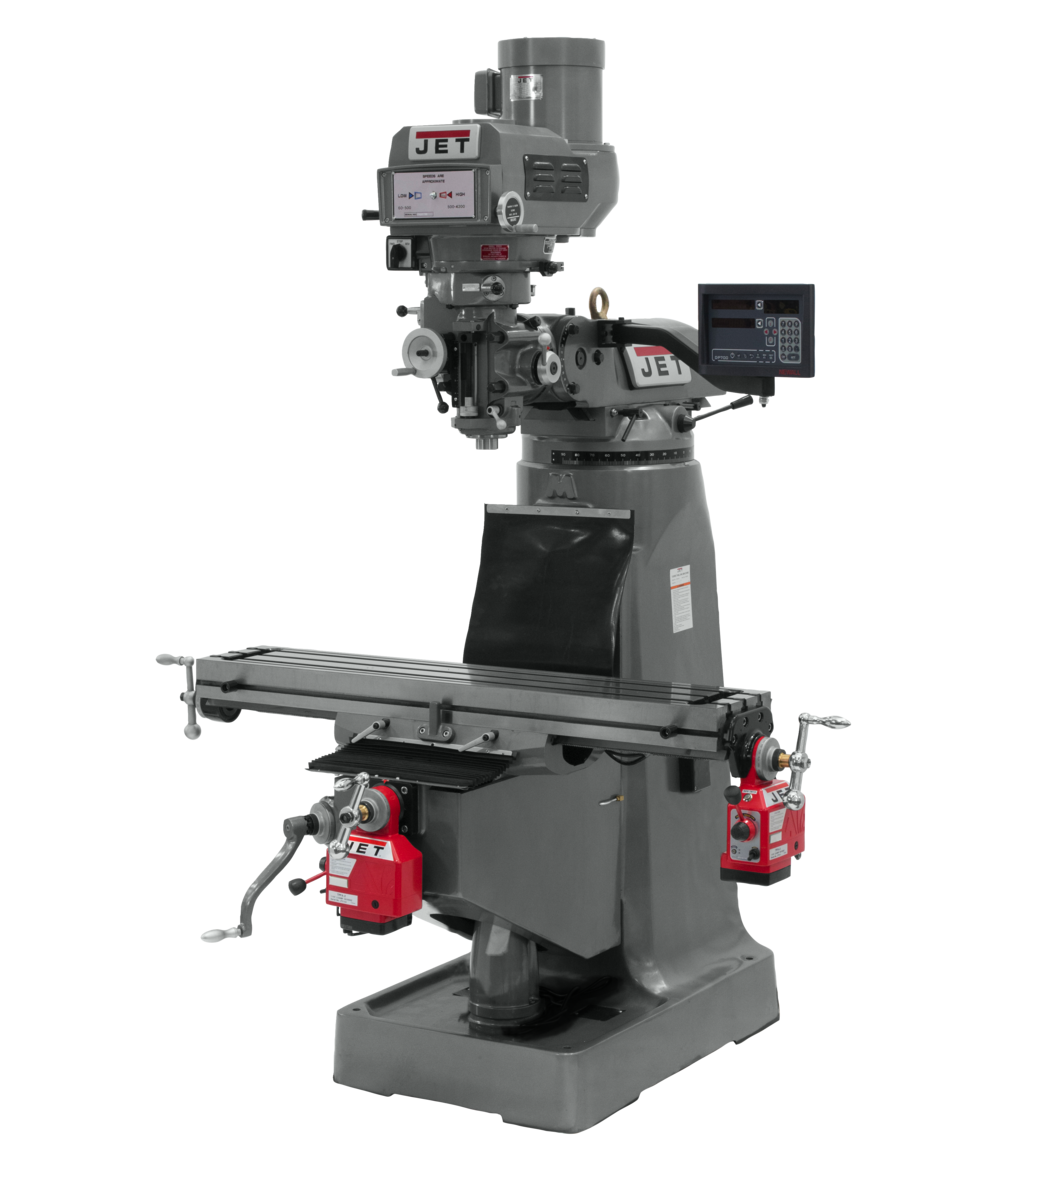 JTM-4VS Mill With 3-Axis Newall DP700 DRO (Quill) With X and Y-Axis Powerfeeds